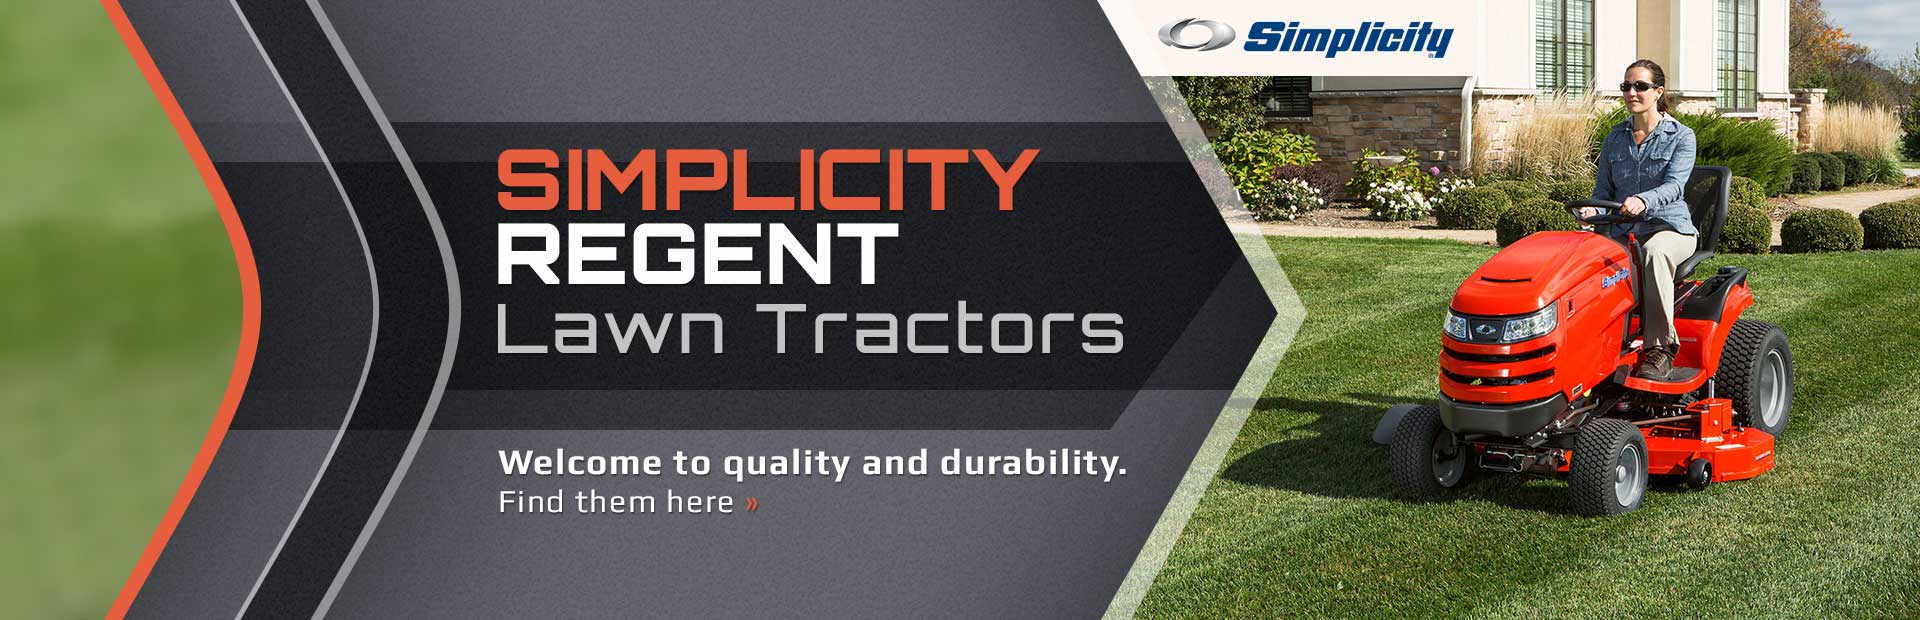 Click here to view our selection of Simplicity Regent lawn tractors!